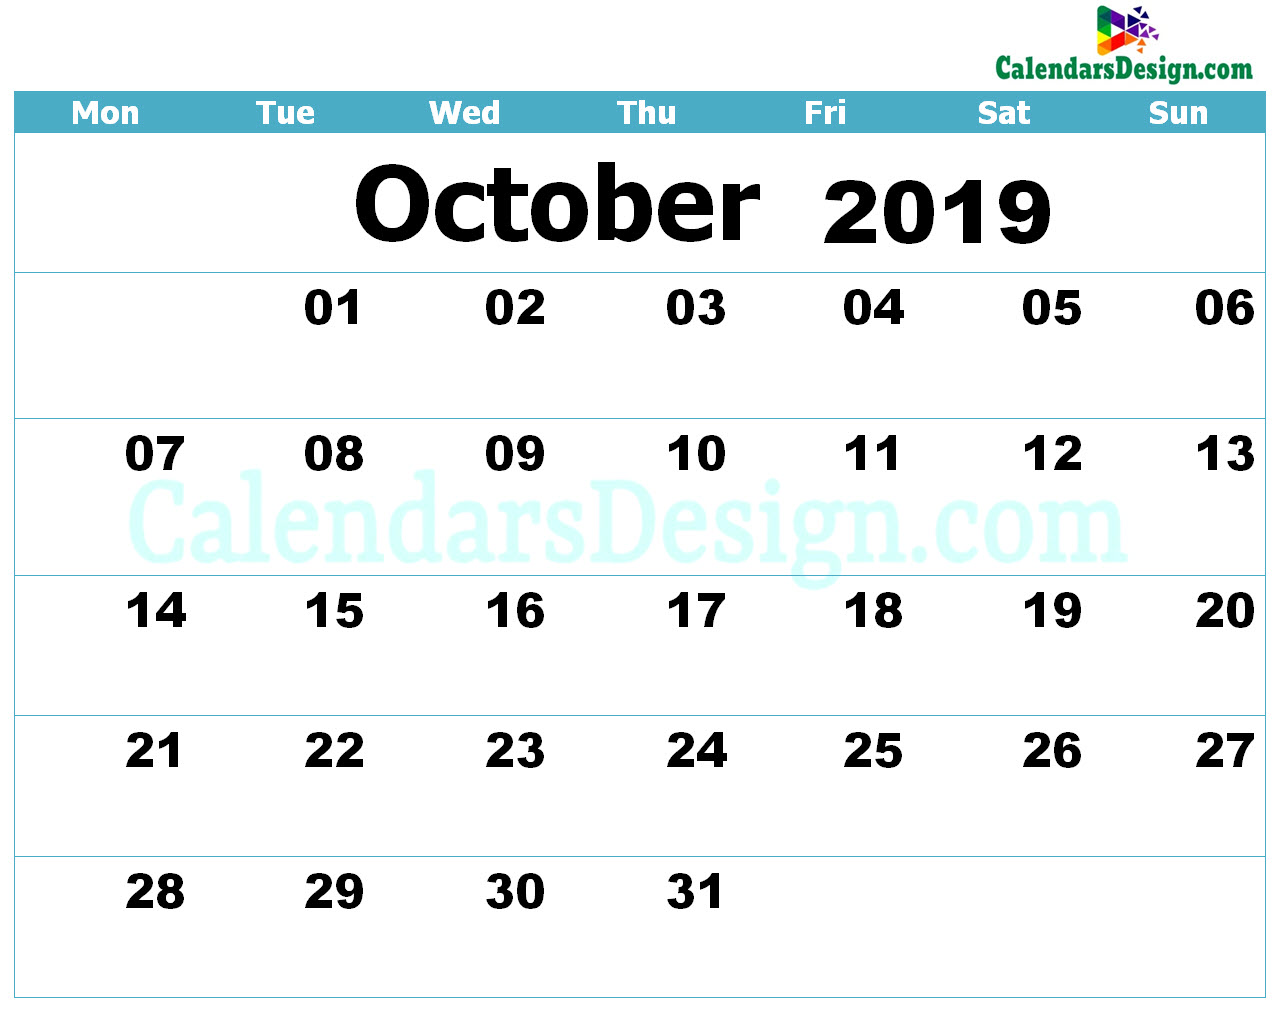 Printable Calendar for October 2019 Templates